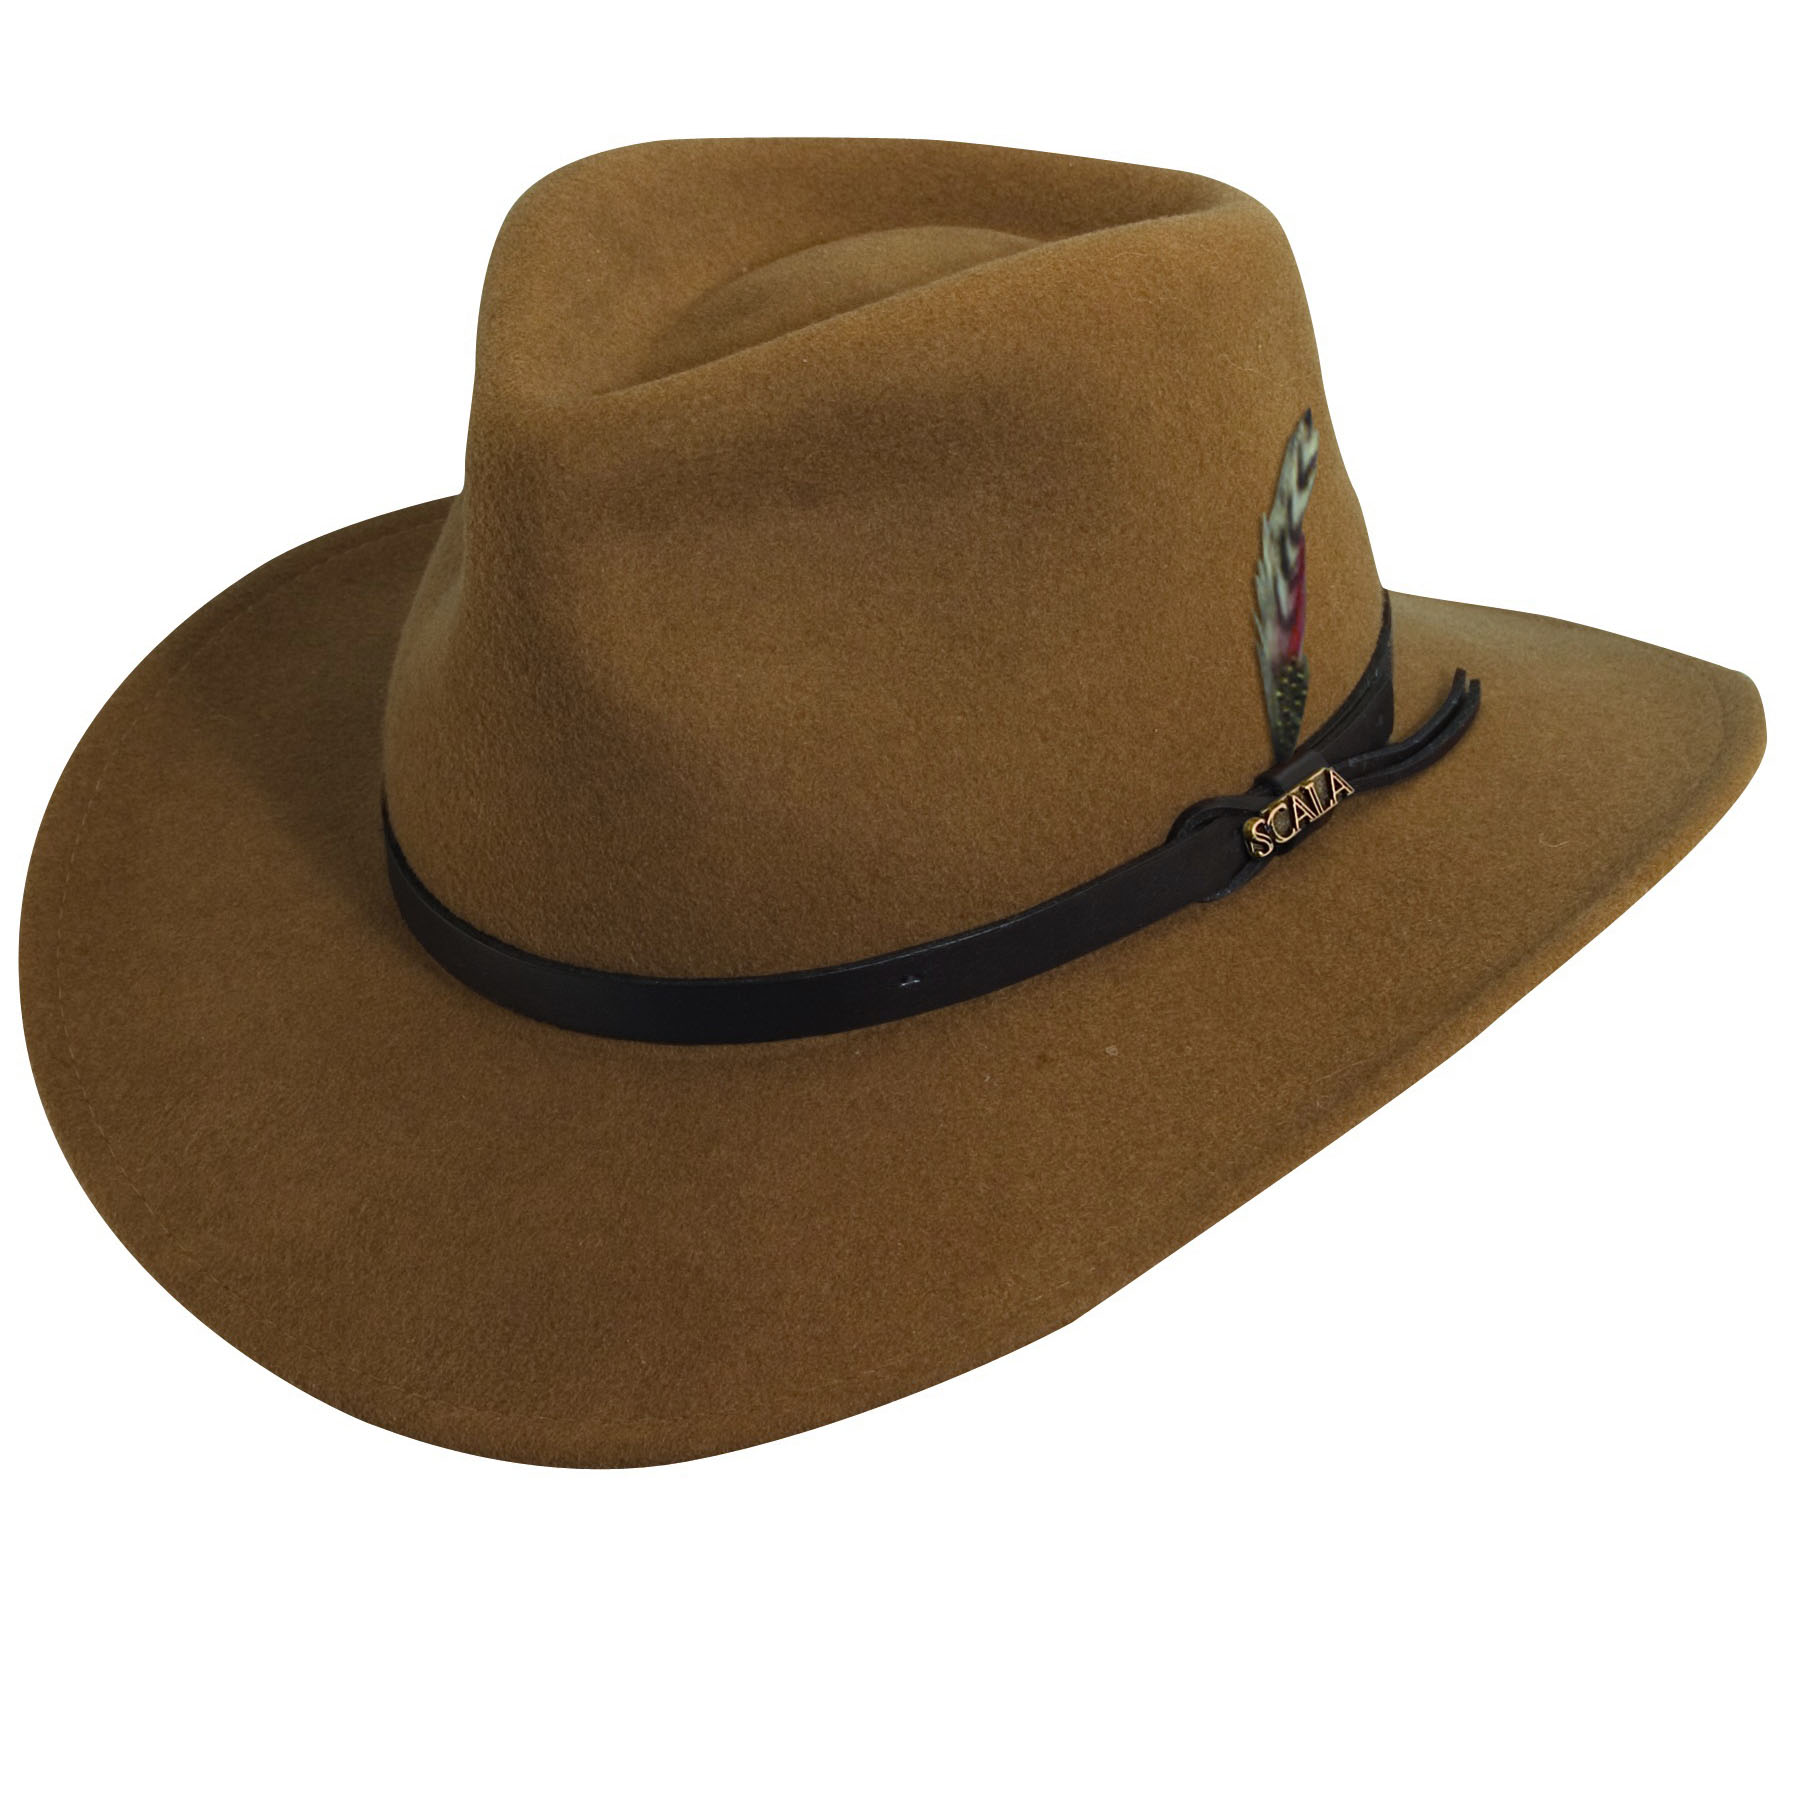 600272fdad0 ... low price wool felt outback hat with feather accent explorer hats b31ca  9ebd7